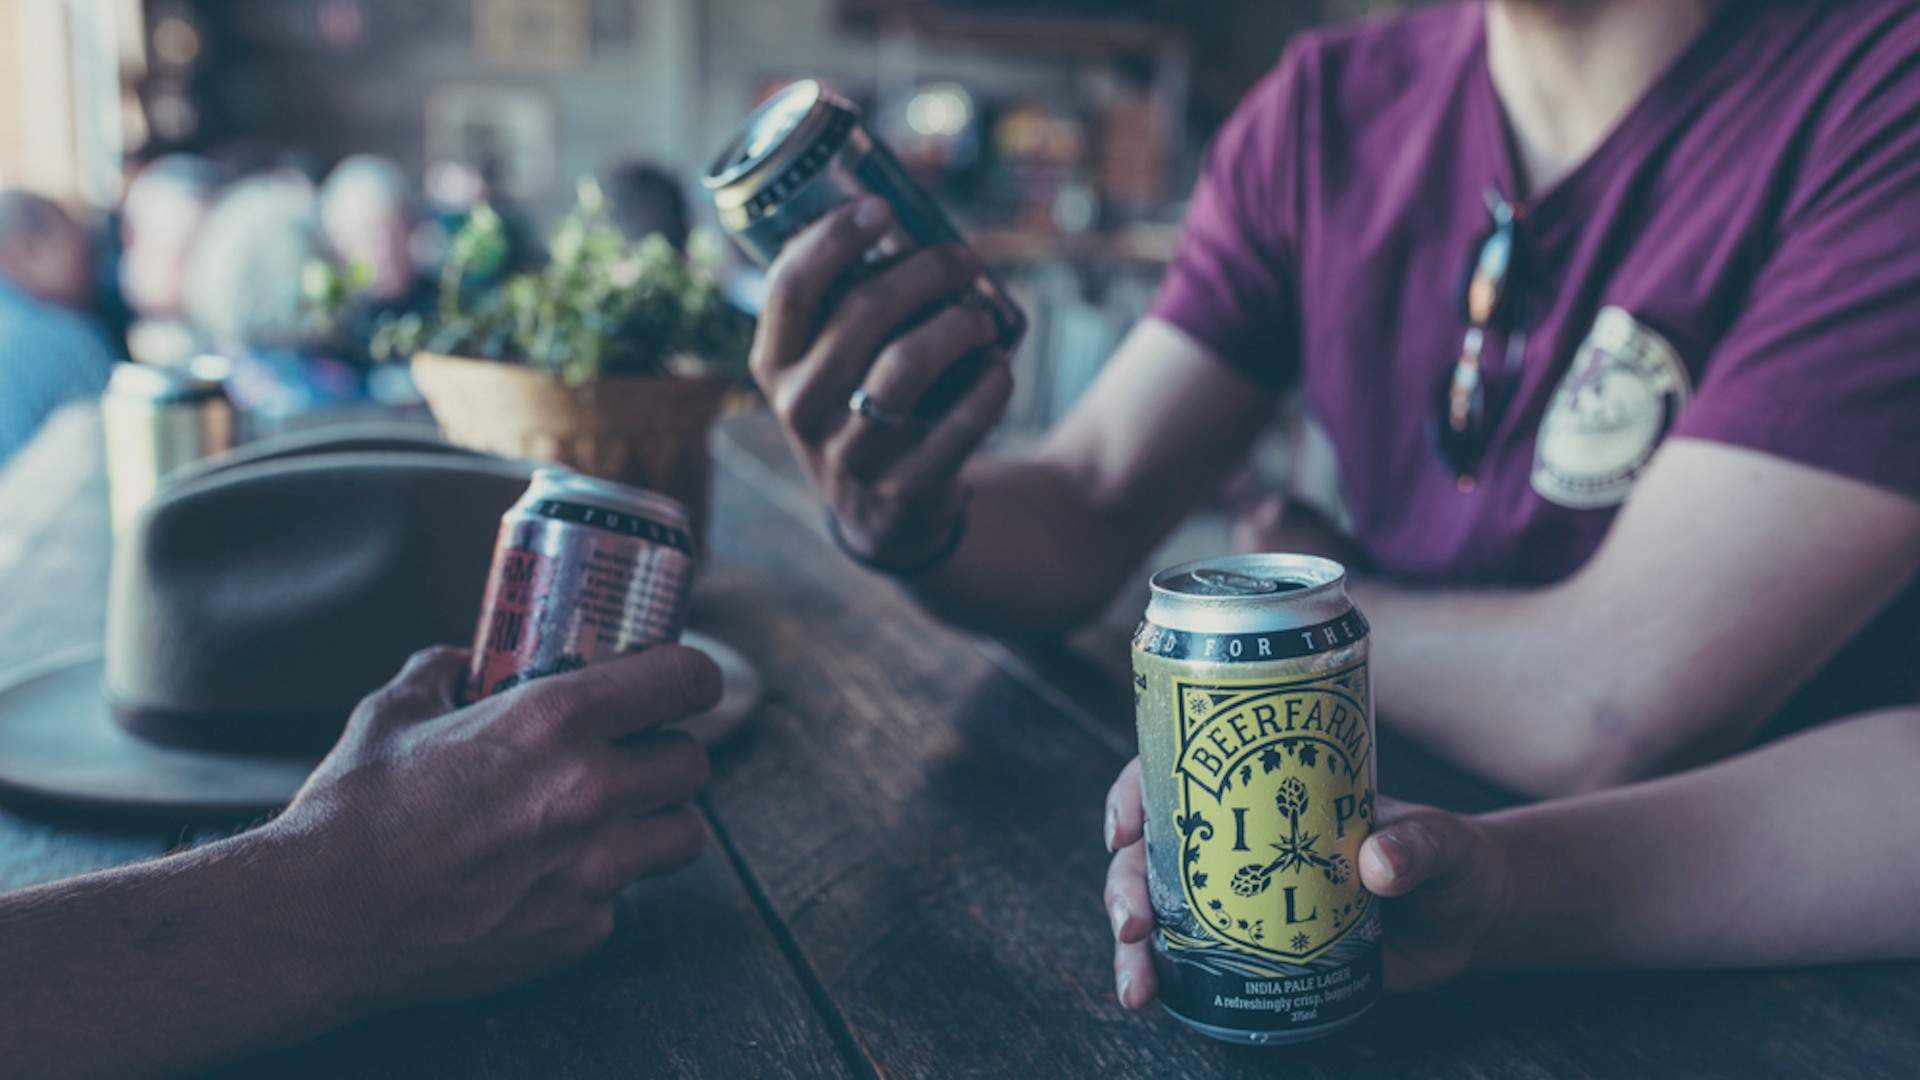 Aussie Brewery Beerfarm Is Now Delivering Its Craft Brews to Homes Across Australia